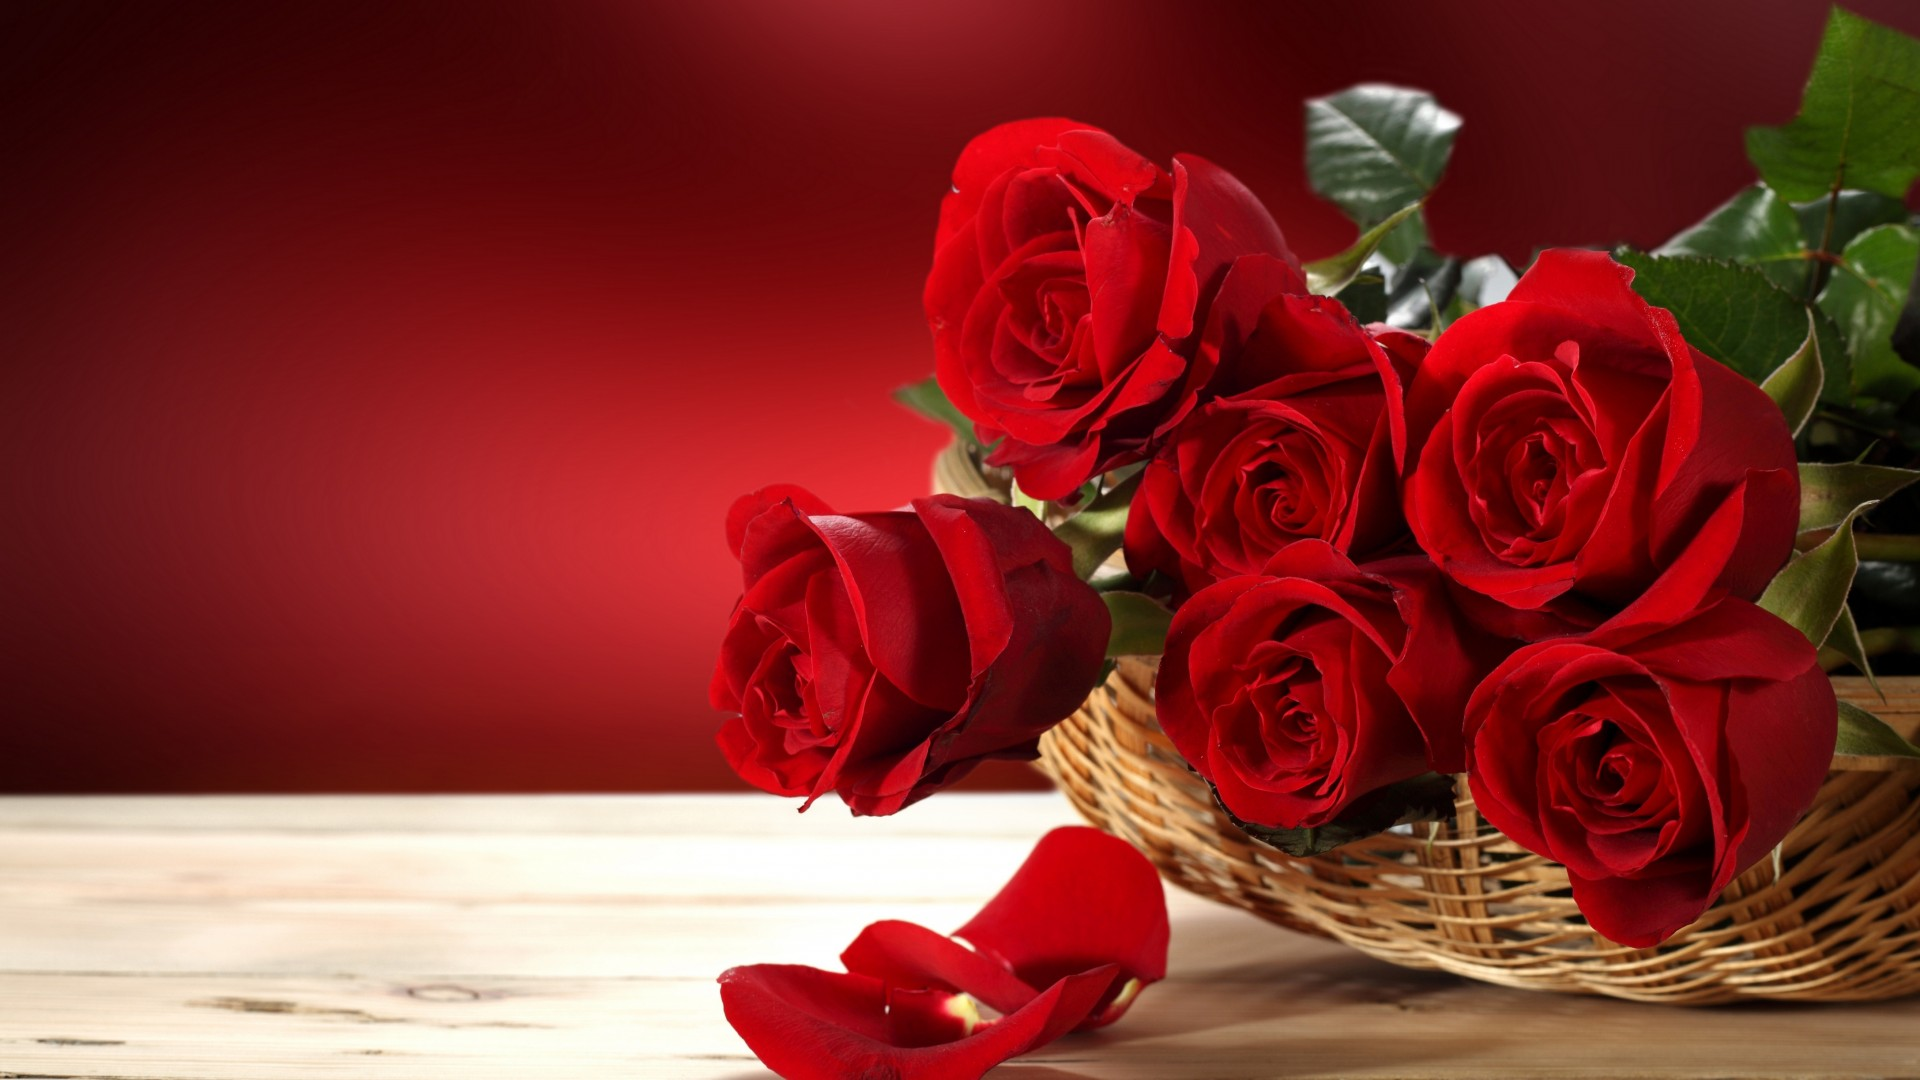 Wallpaper roses 5k 4k wallpaper flower bouquet red - Red flower desktop wallpaper ...